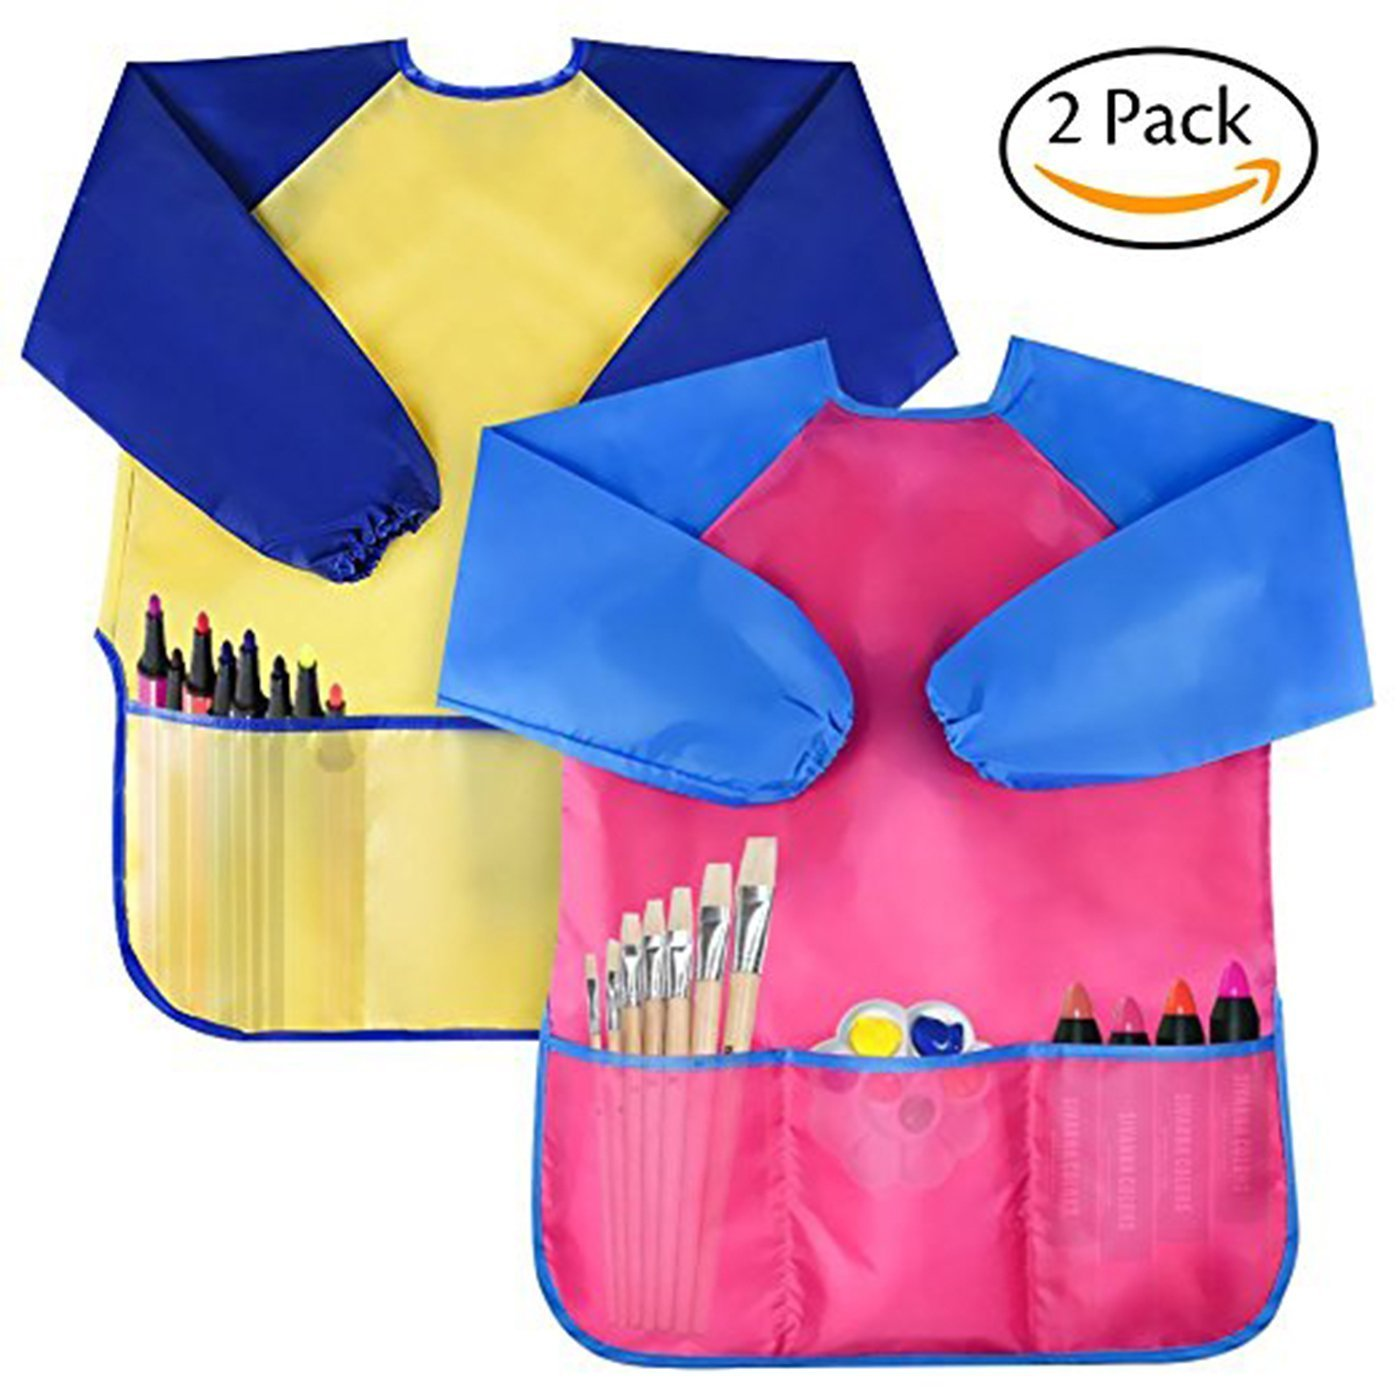 YuKing Kids Art Smocks,Children Waterproof Artist Painting Aprons Long Sleeve with 3 Pockets for Age 2-6 Years, set of 2 (Yellow+Rose)